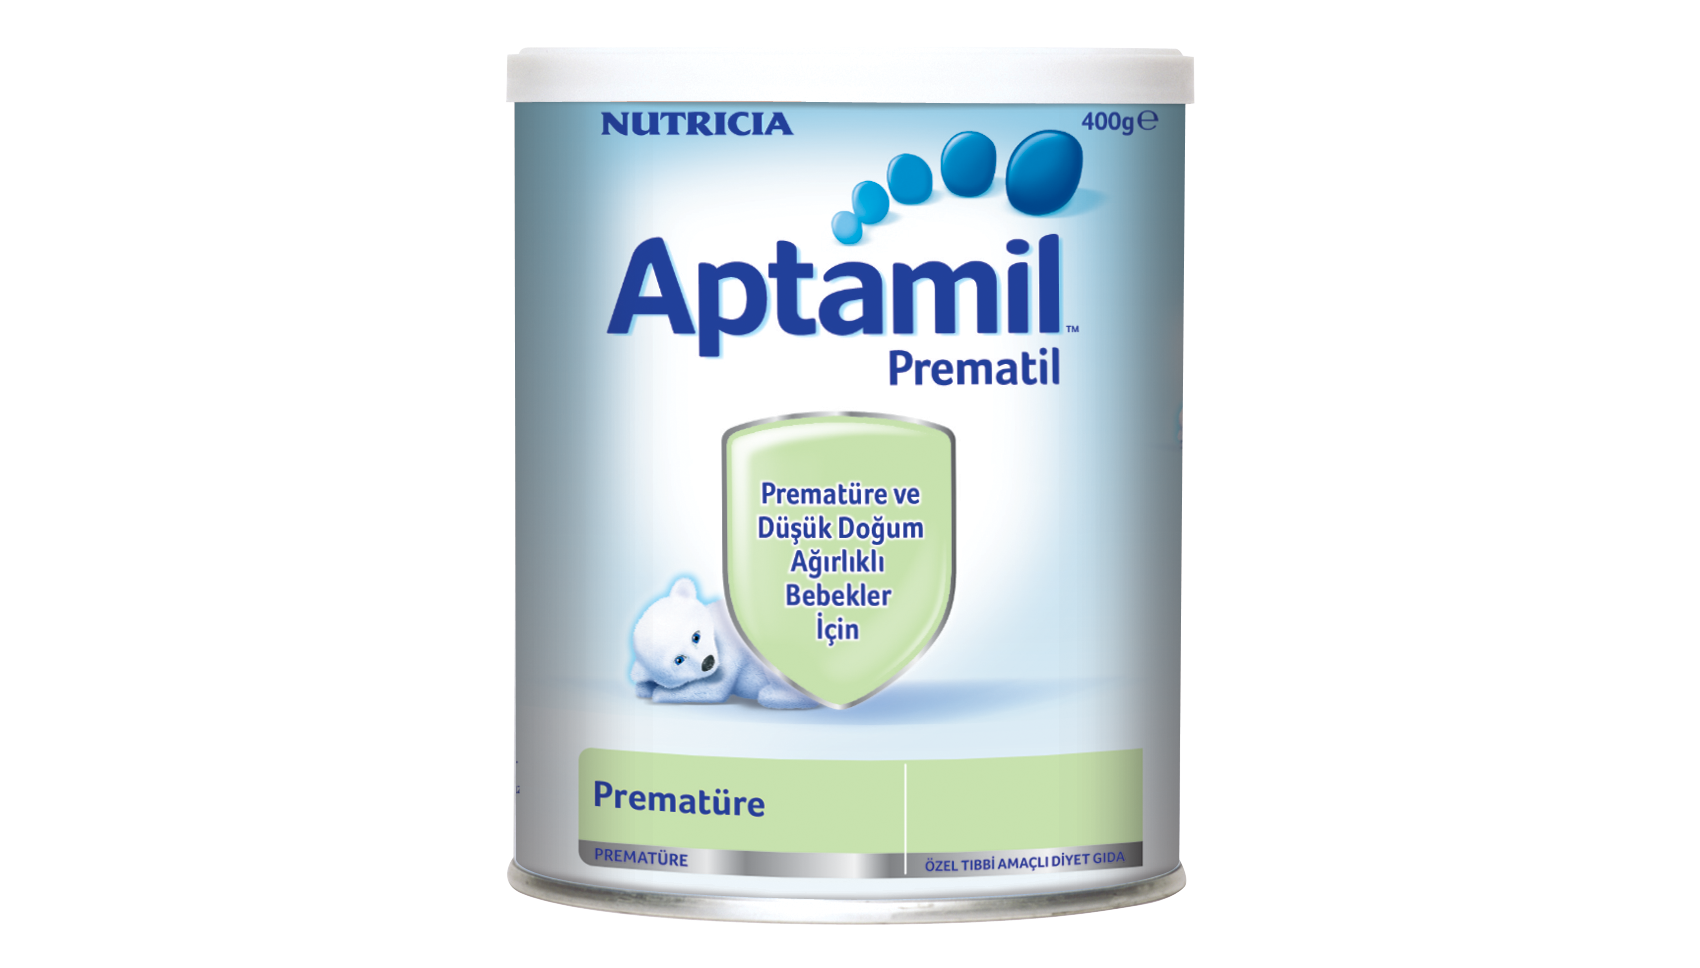 Aptamil Prematil